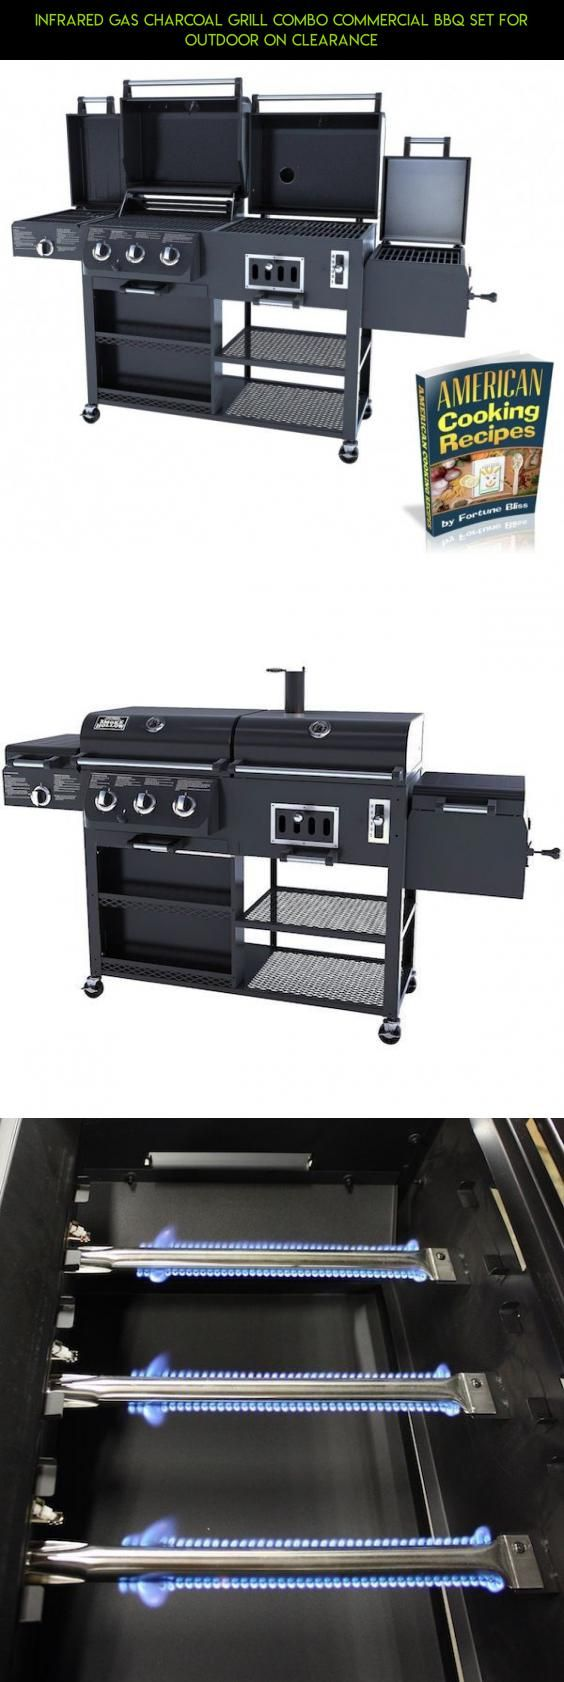 Infrared Gas Charcoal Grill Combo Commercial BBQ Set For Outdoor On Clearance #charcoal #parts #kit #shopping #on #clearance #fpv #plans #camera #tech #gadgets #technology #drone #grills #racing #products